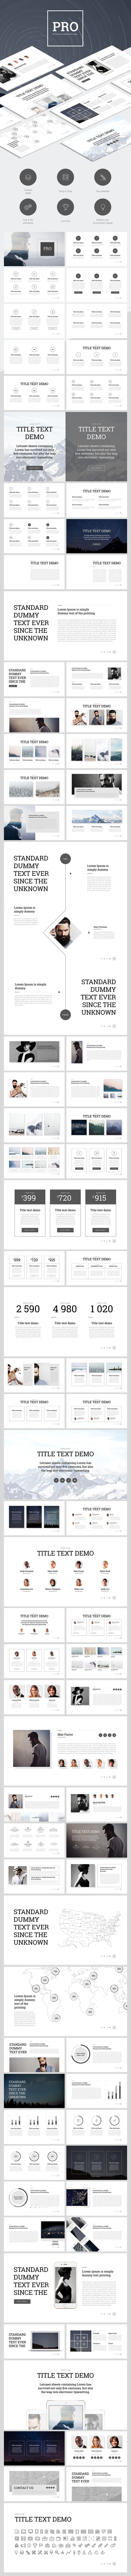 "Download: http://site2max.pro/pro-keynote-template/ ""PRO"" Keynote Template #pro #keynote #key #marketing #minimal #modern #creative #white #business #portfolio #gallery"